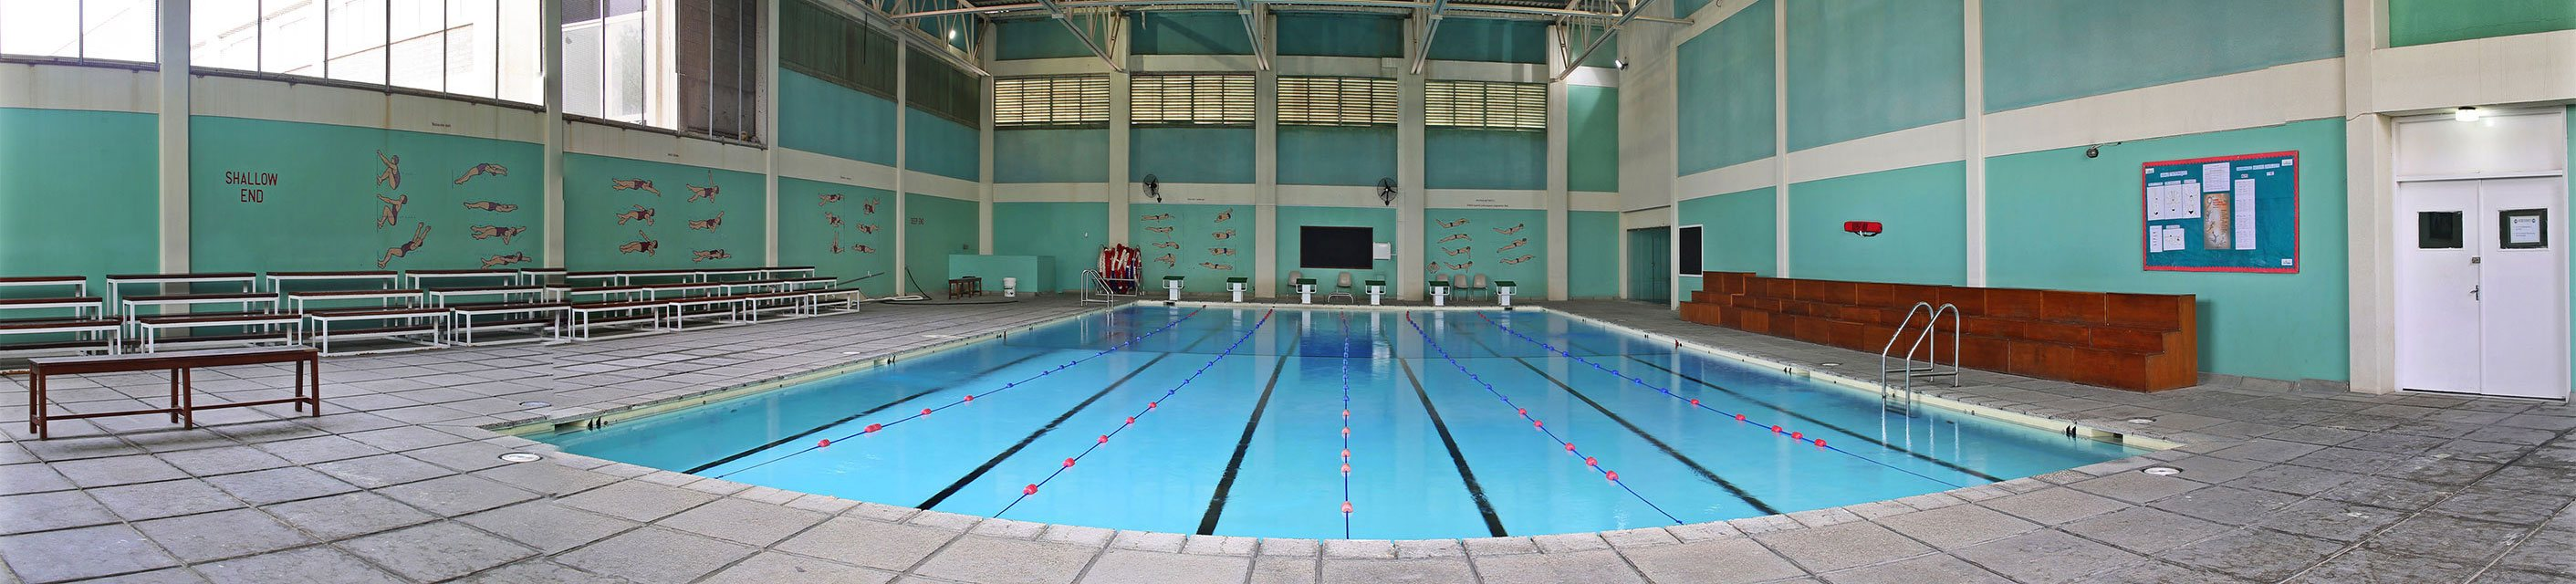 The international school of choueifat abu dhabi for American swimming pool systems